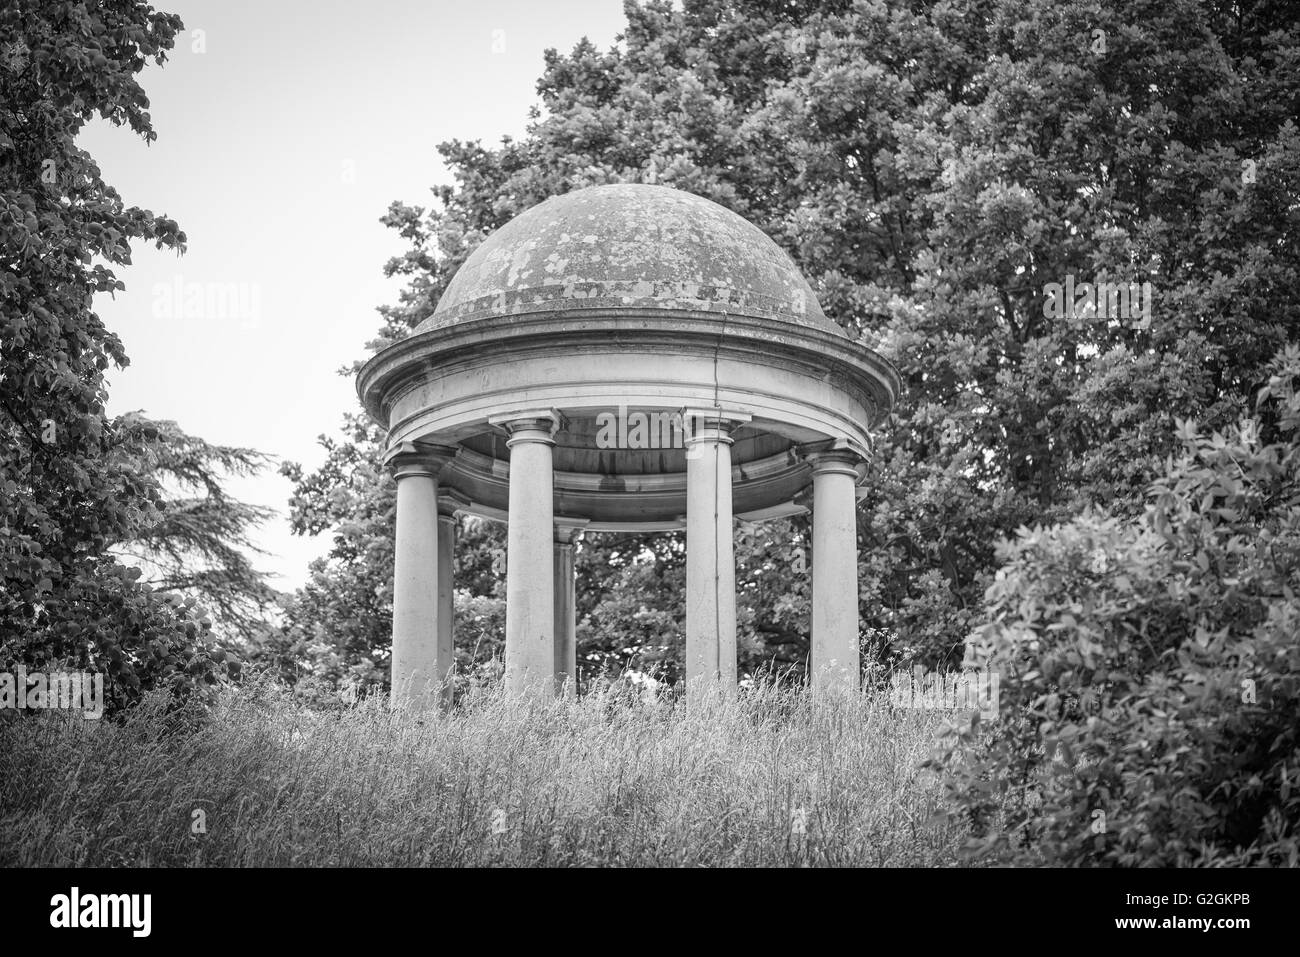 Temple of Aeolus designed and built by Sir William Chambers at Kew Botanical Gardens in London, England - Stock Image